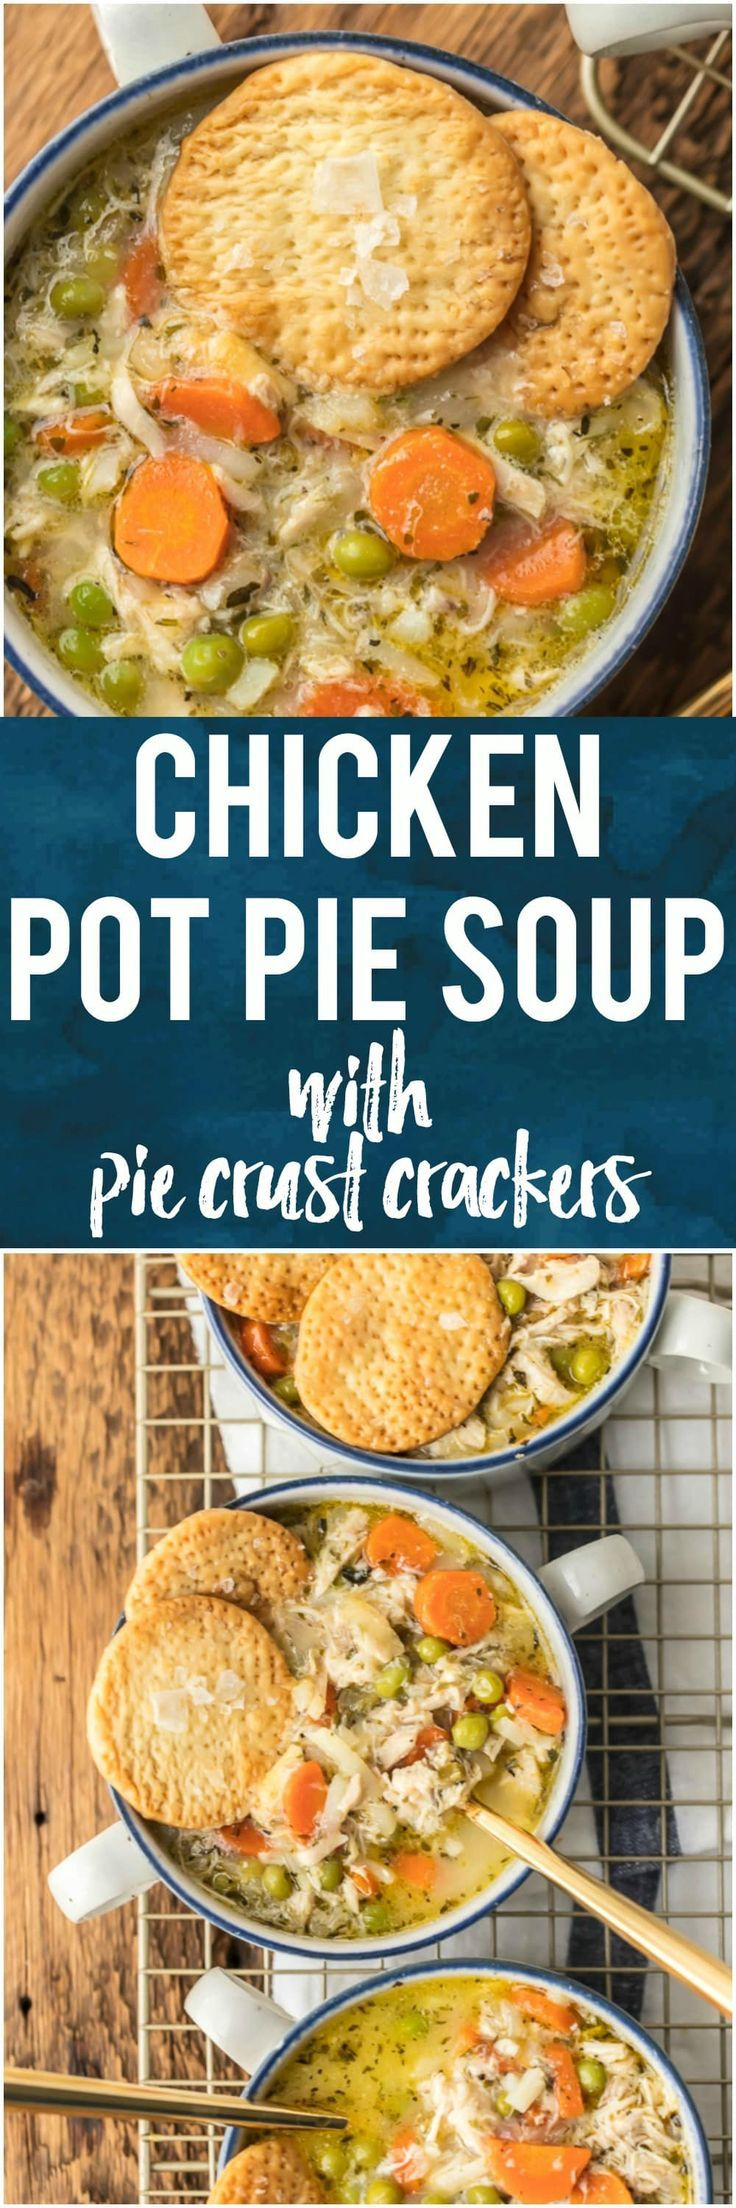 This CHICKEN POT PIE SOUP with PIE CRUST CRACKERS is hearty, delicious, creative, and easy; a favorite family recipe transformed into an unexpected soup! It's one of our favorite comfort food soups for Winter. #soup #chicken #piecrust #winter #comfortfood via @beckygallhardin